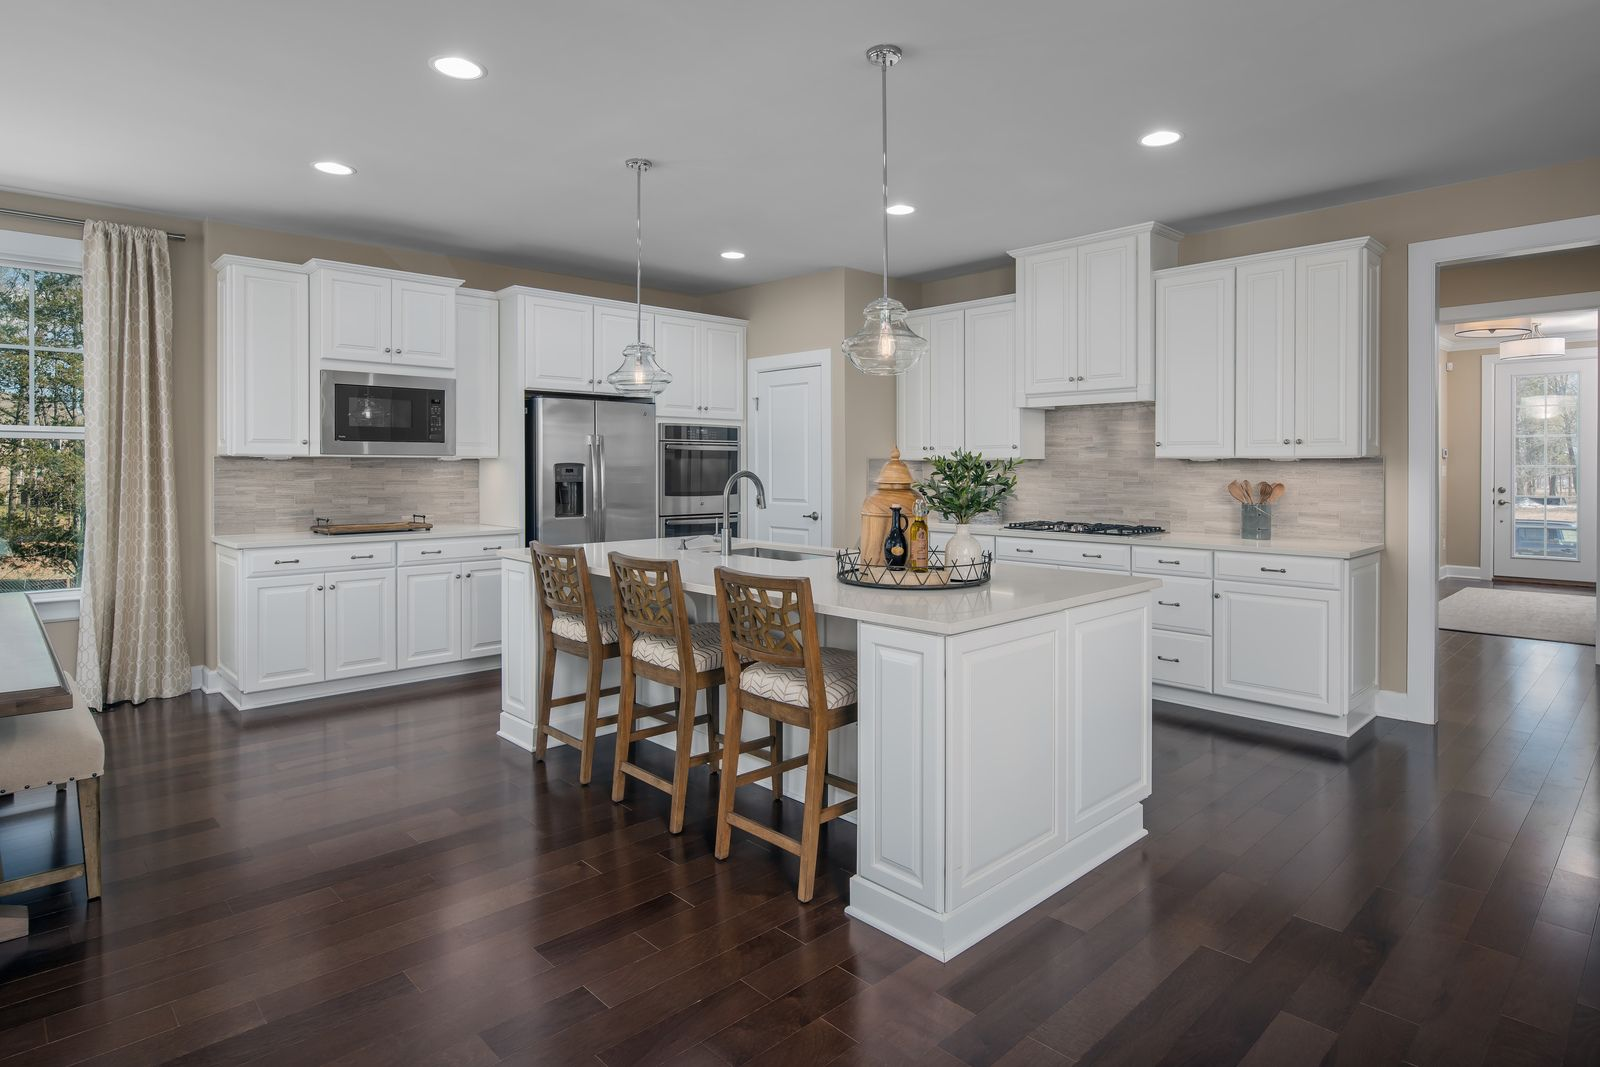 Kitchen featured in the Danville By NVHomes in Washington, MD